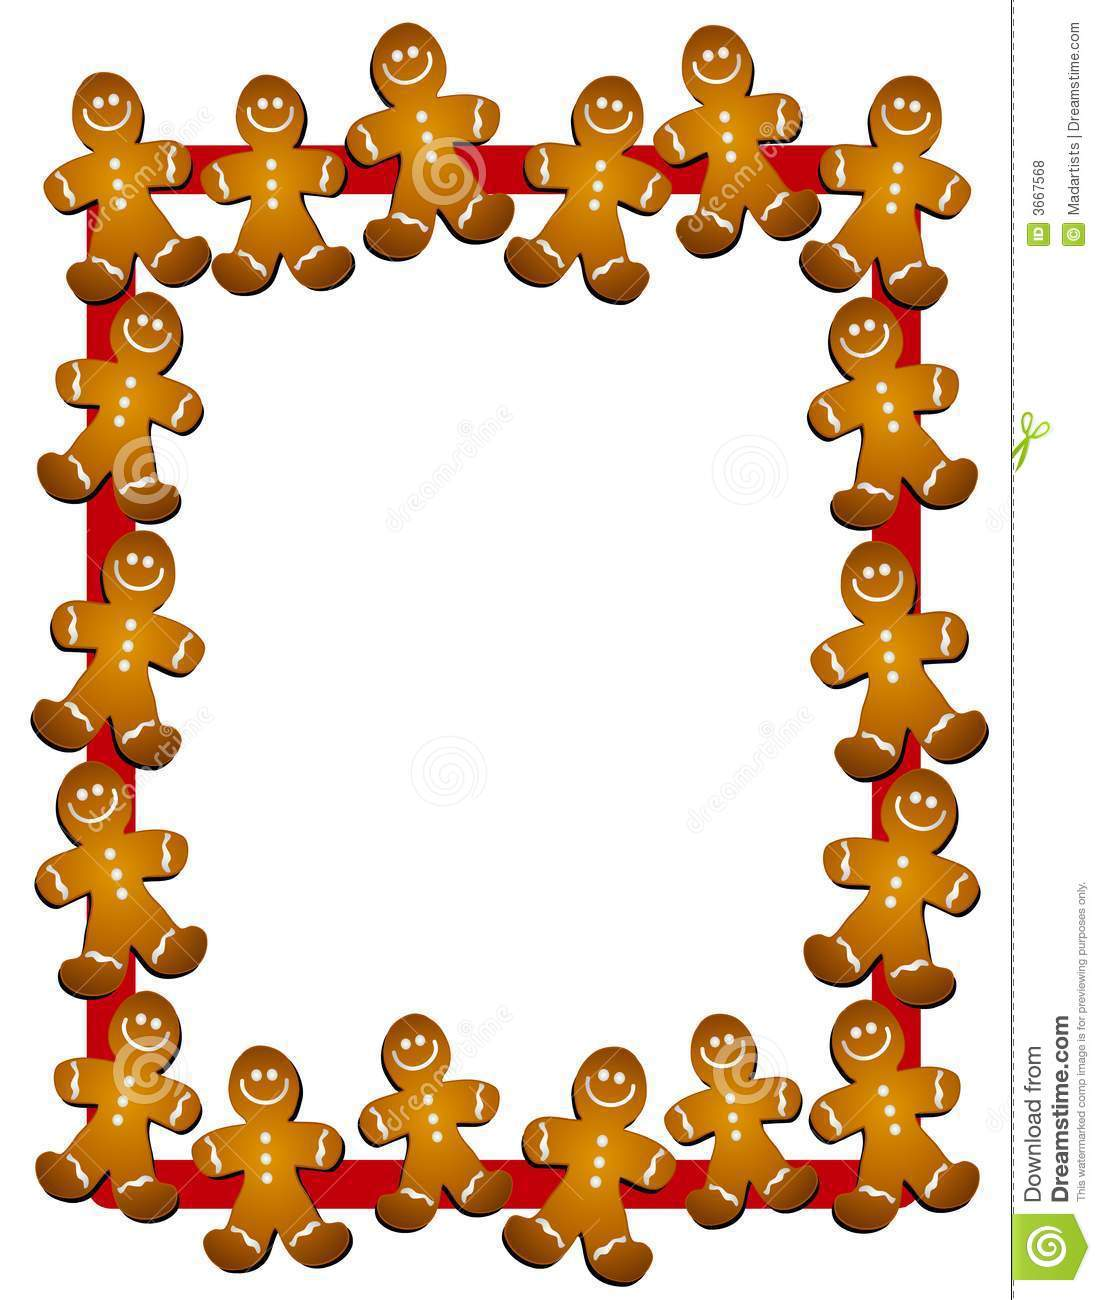 1101x1300 Christmas Cookies Clip Art Border Merry Christmas And Happy New